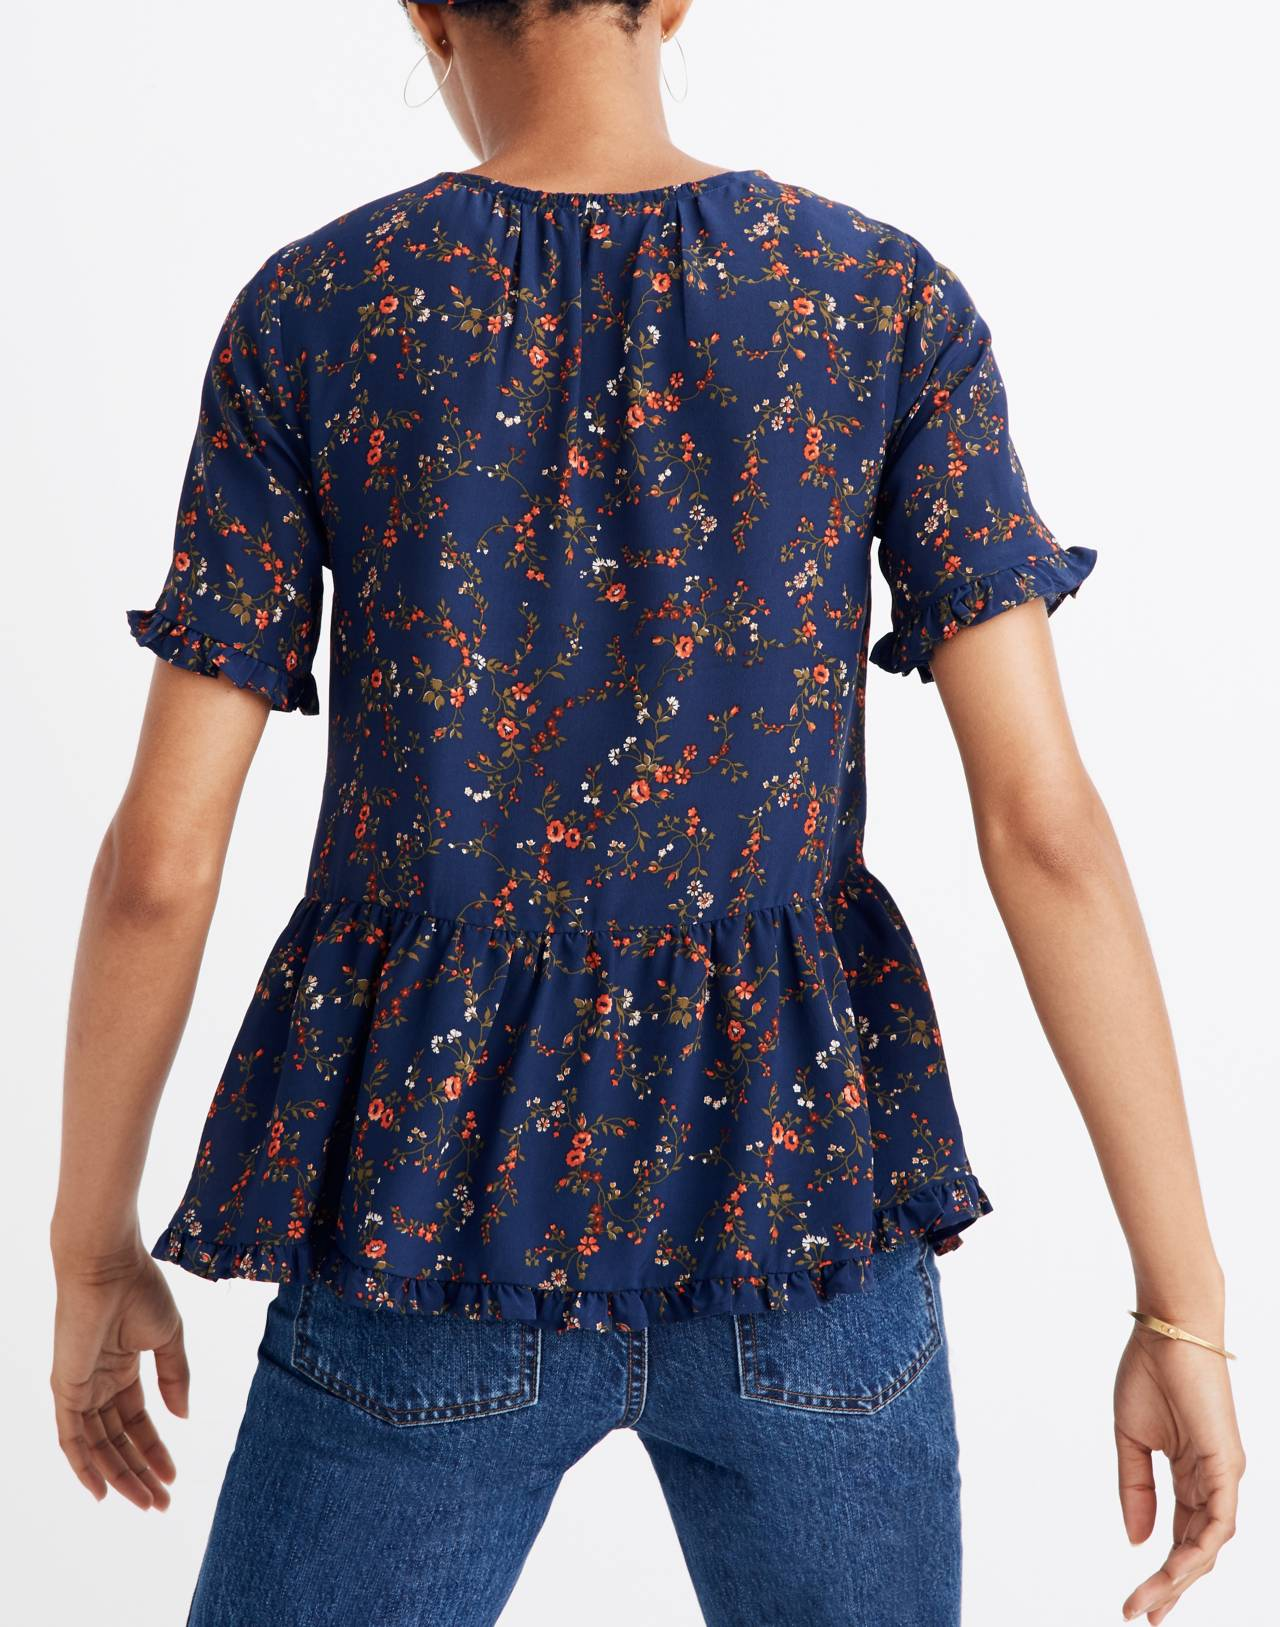 Silk Stanza Ruffle-Hem Top in Moonless Floral in whisper moonless night image 2